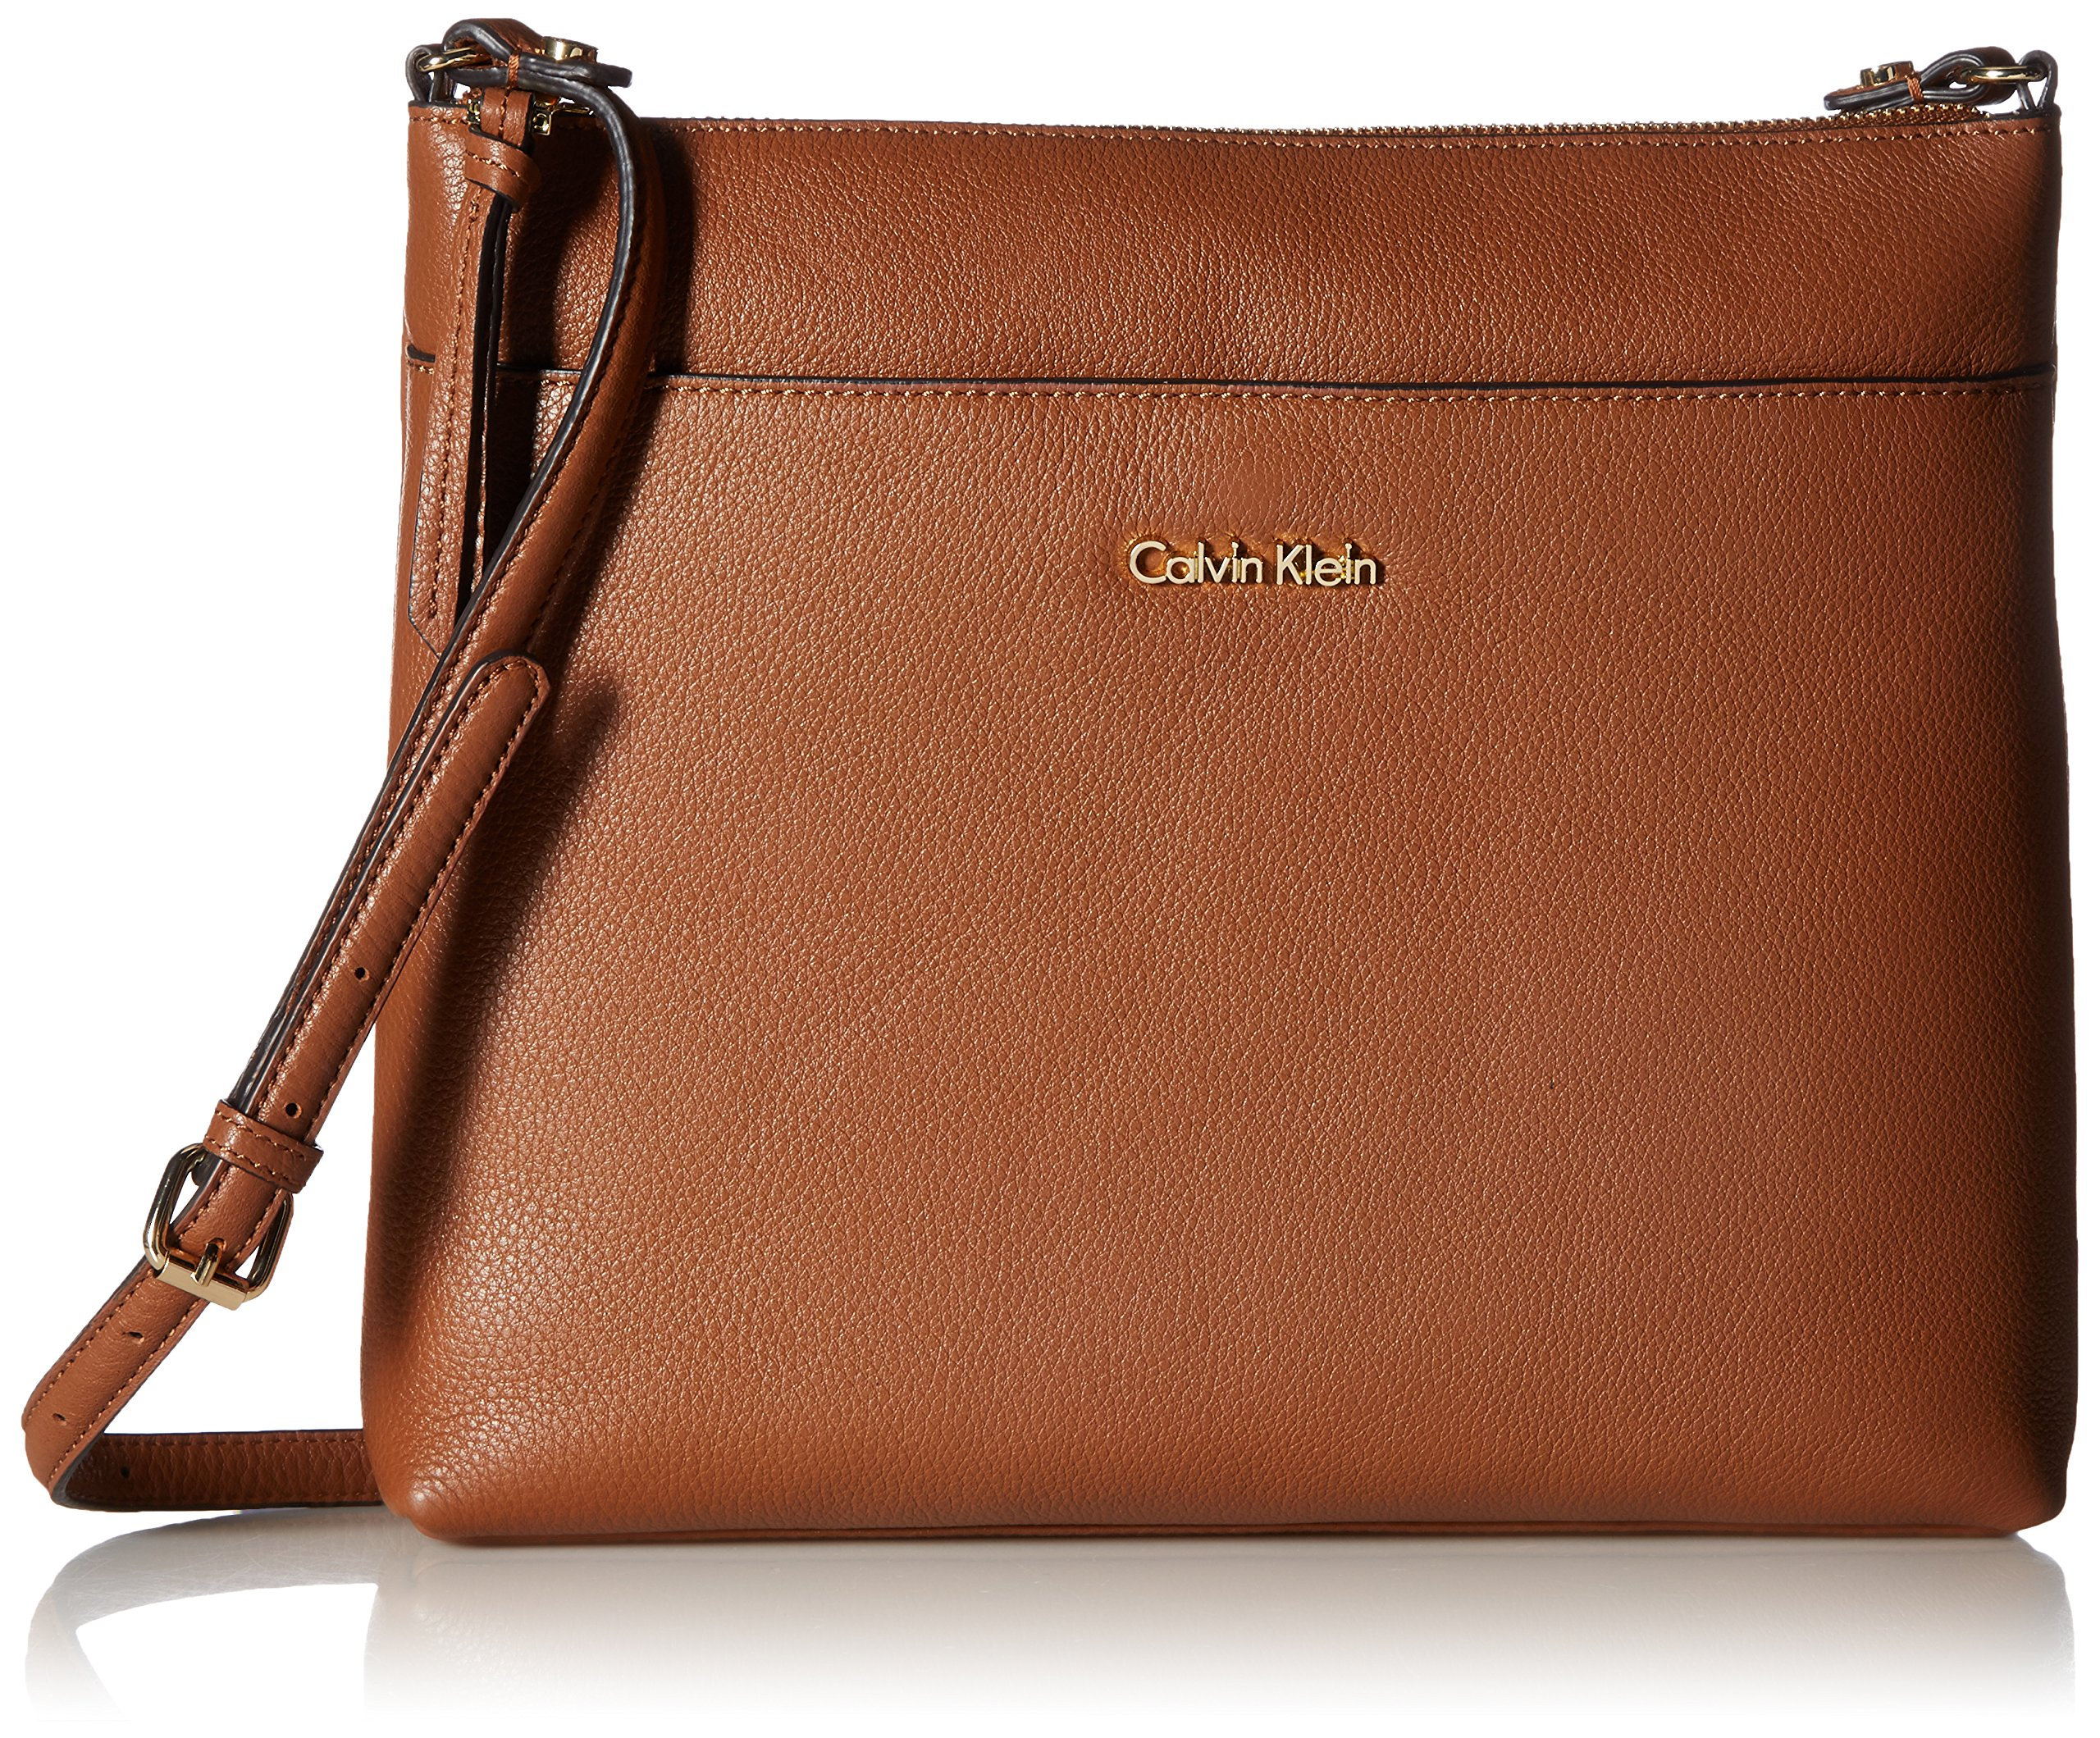 Calvin Klein Pebble Top Zip N/s Large Crossbody